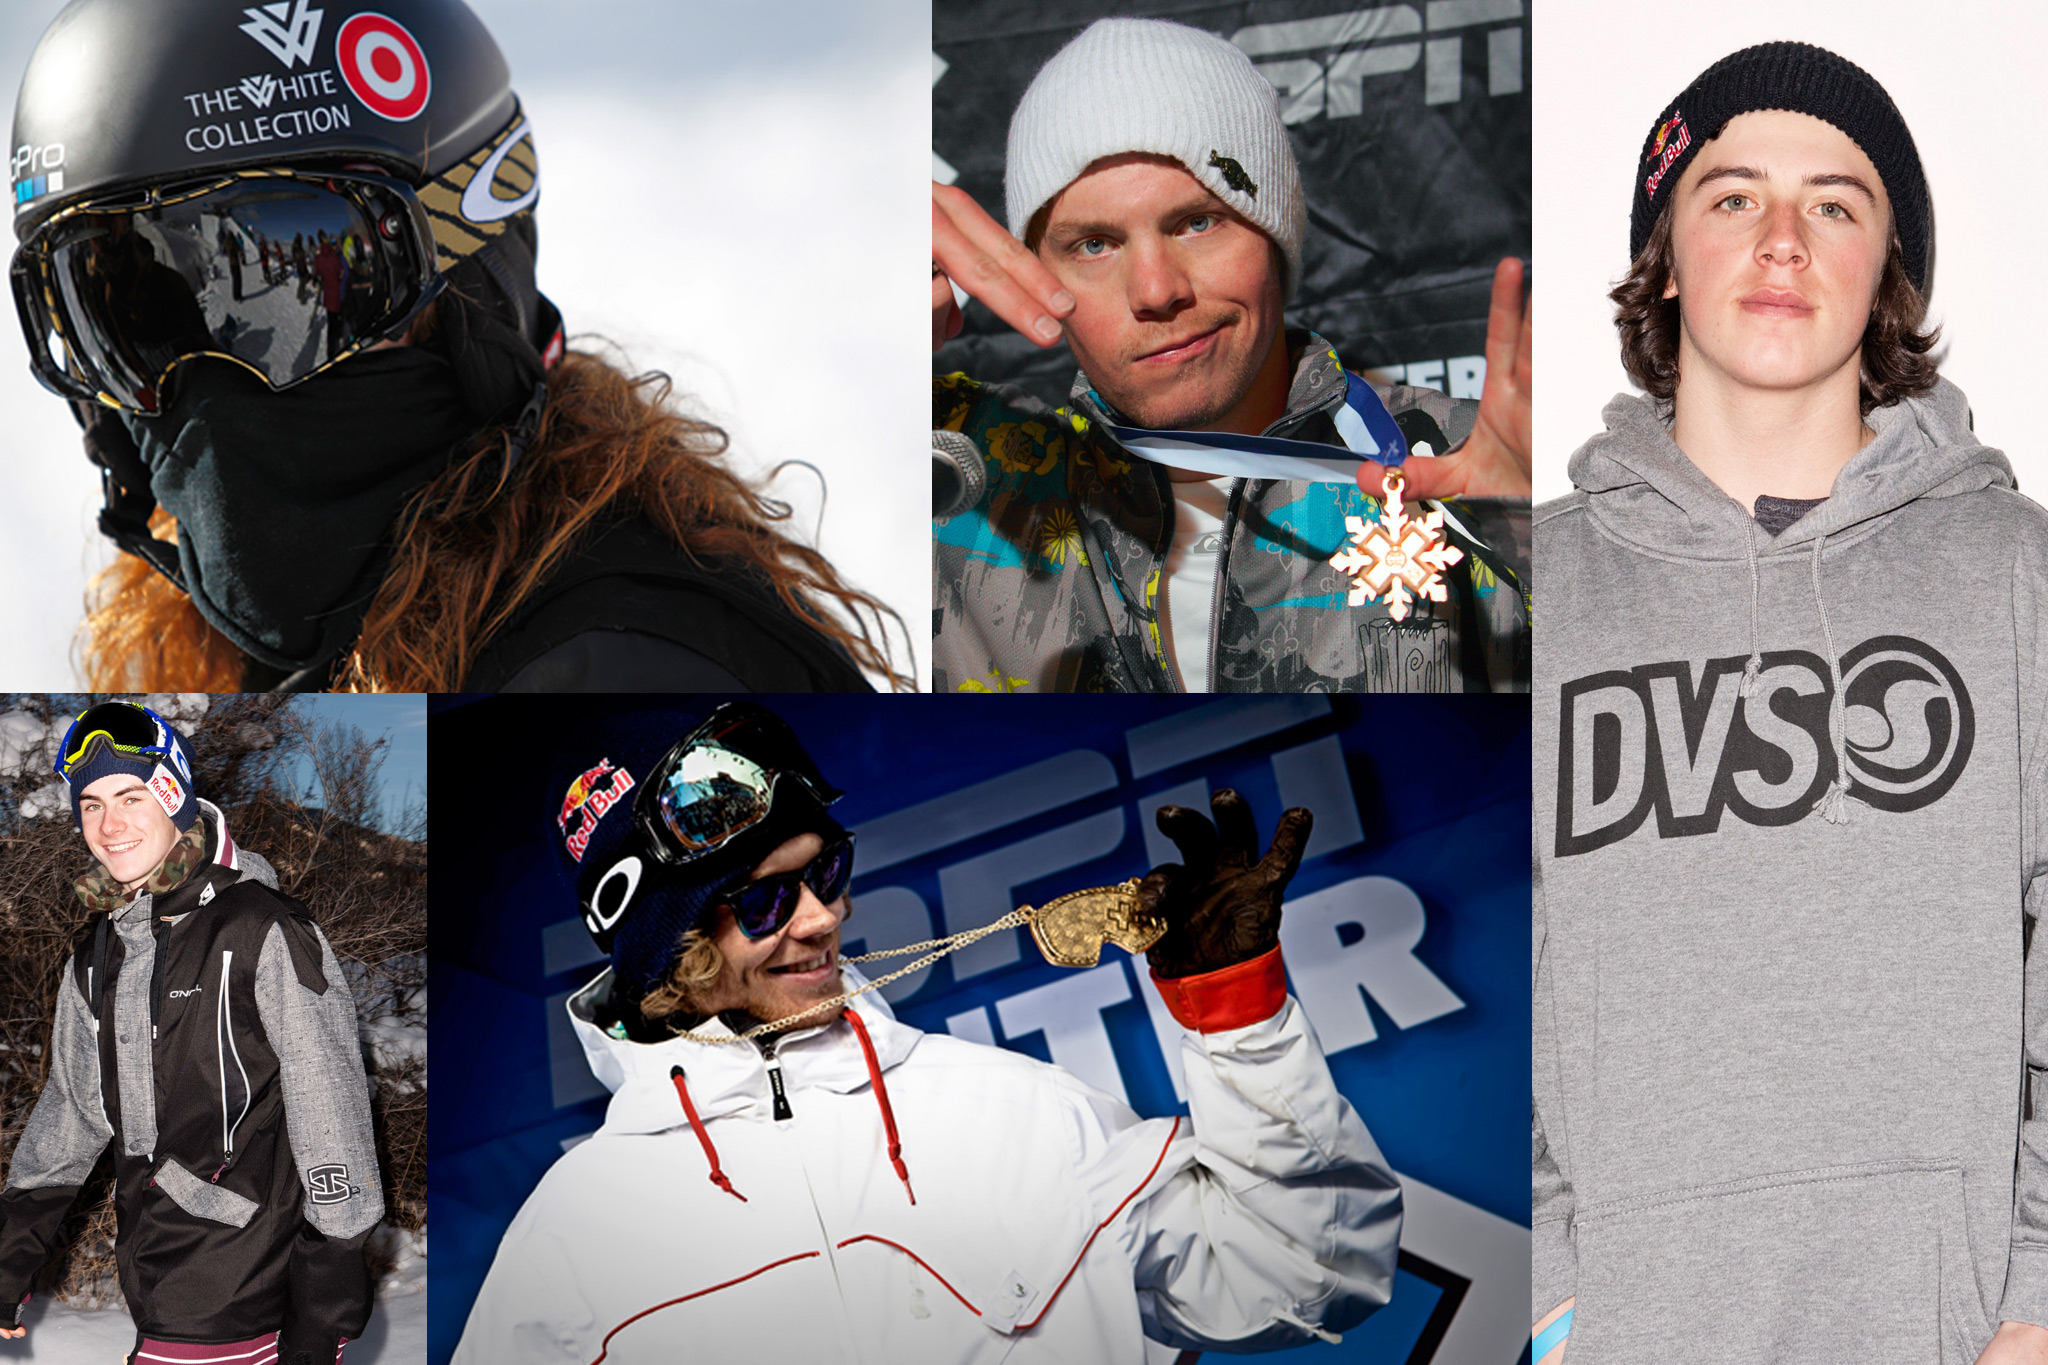 Heroes of X Games Slopestyle